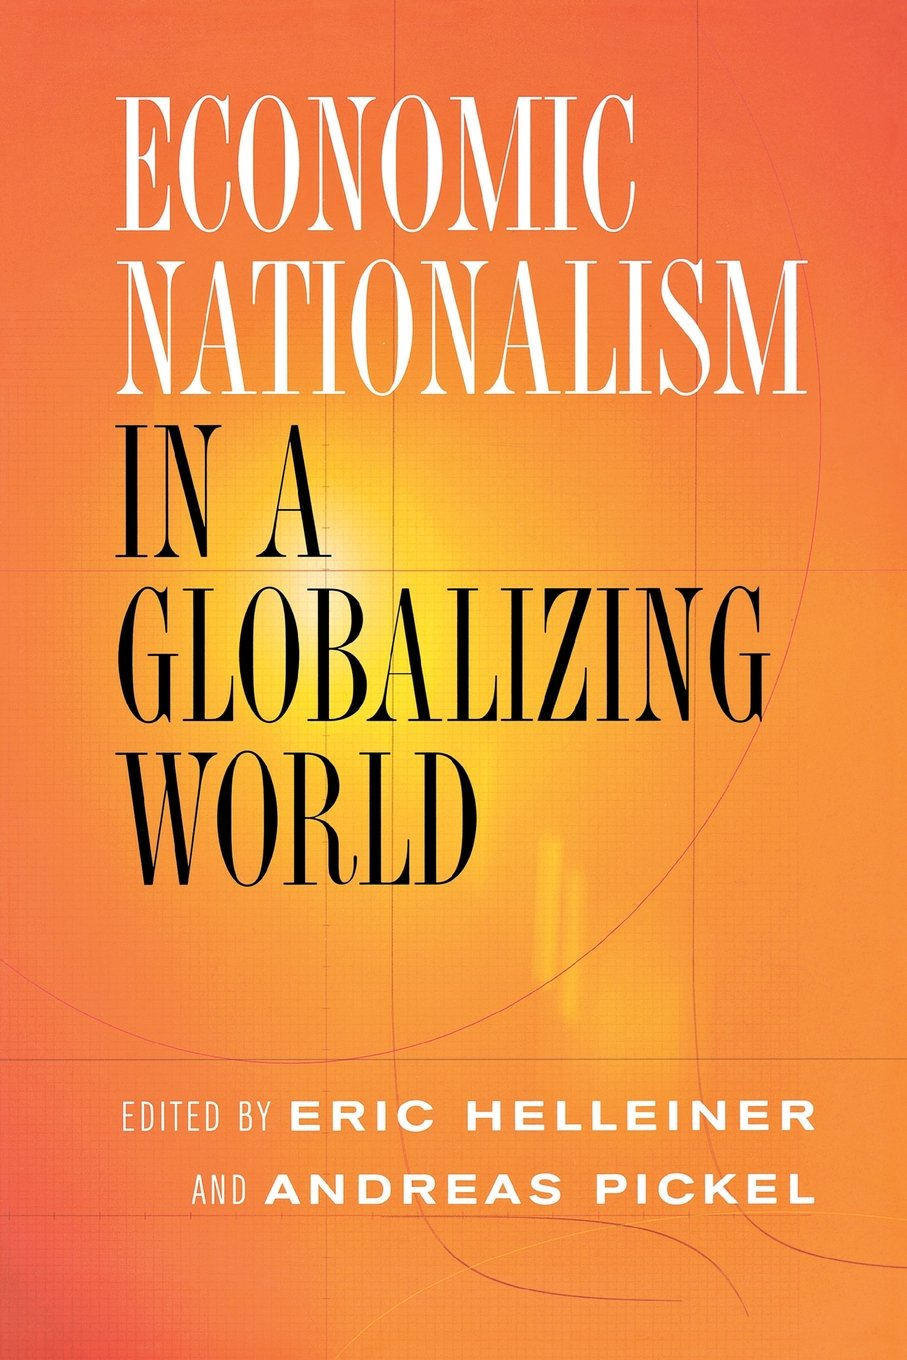 Economic Nationalism in a Globalizing World (Cornell Studies in Political Economy) PDF ePub fb2 ebook